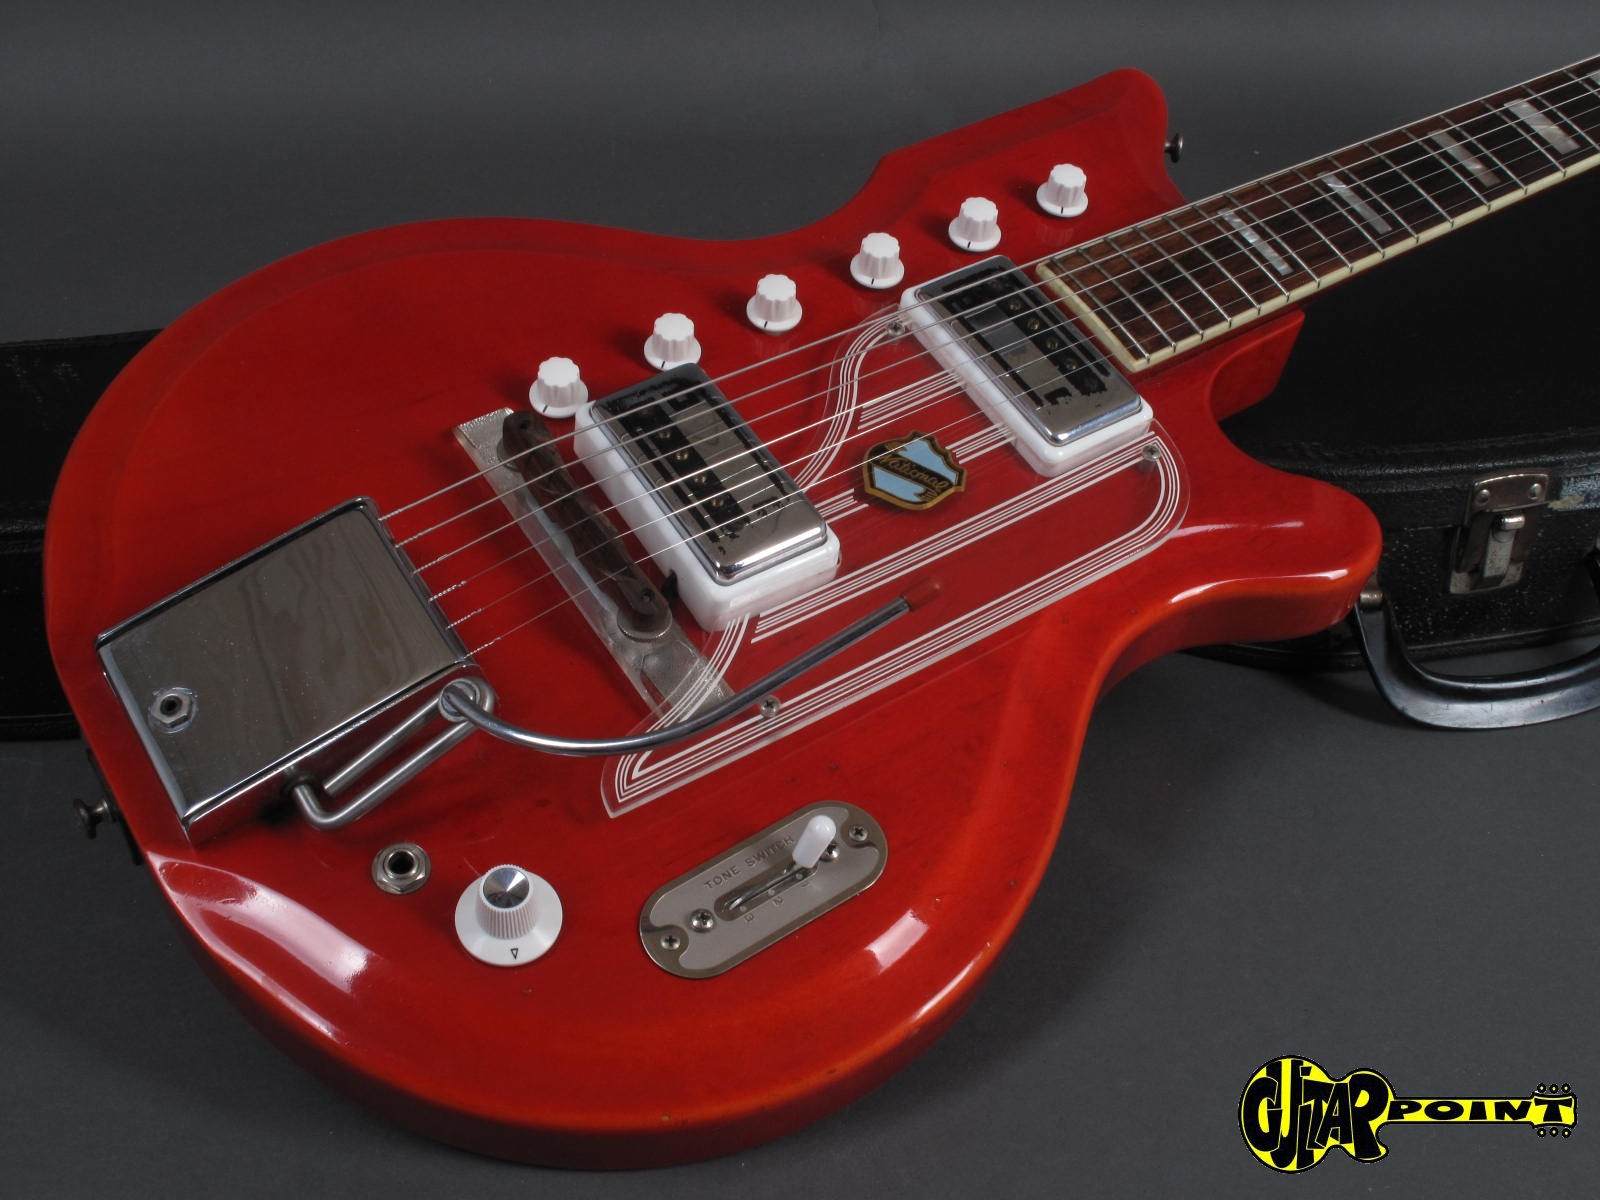 https://guitarpoint.de/app/uploads/products/1964-national-westwood-77-red-made-in-usa/National64Westwood77Red_18.jpg